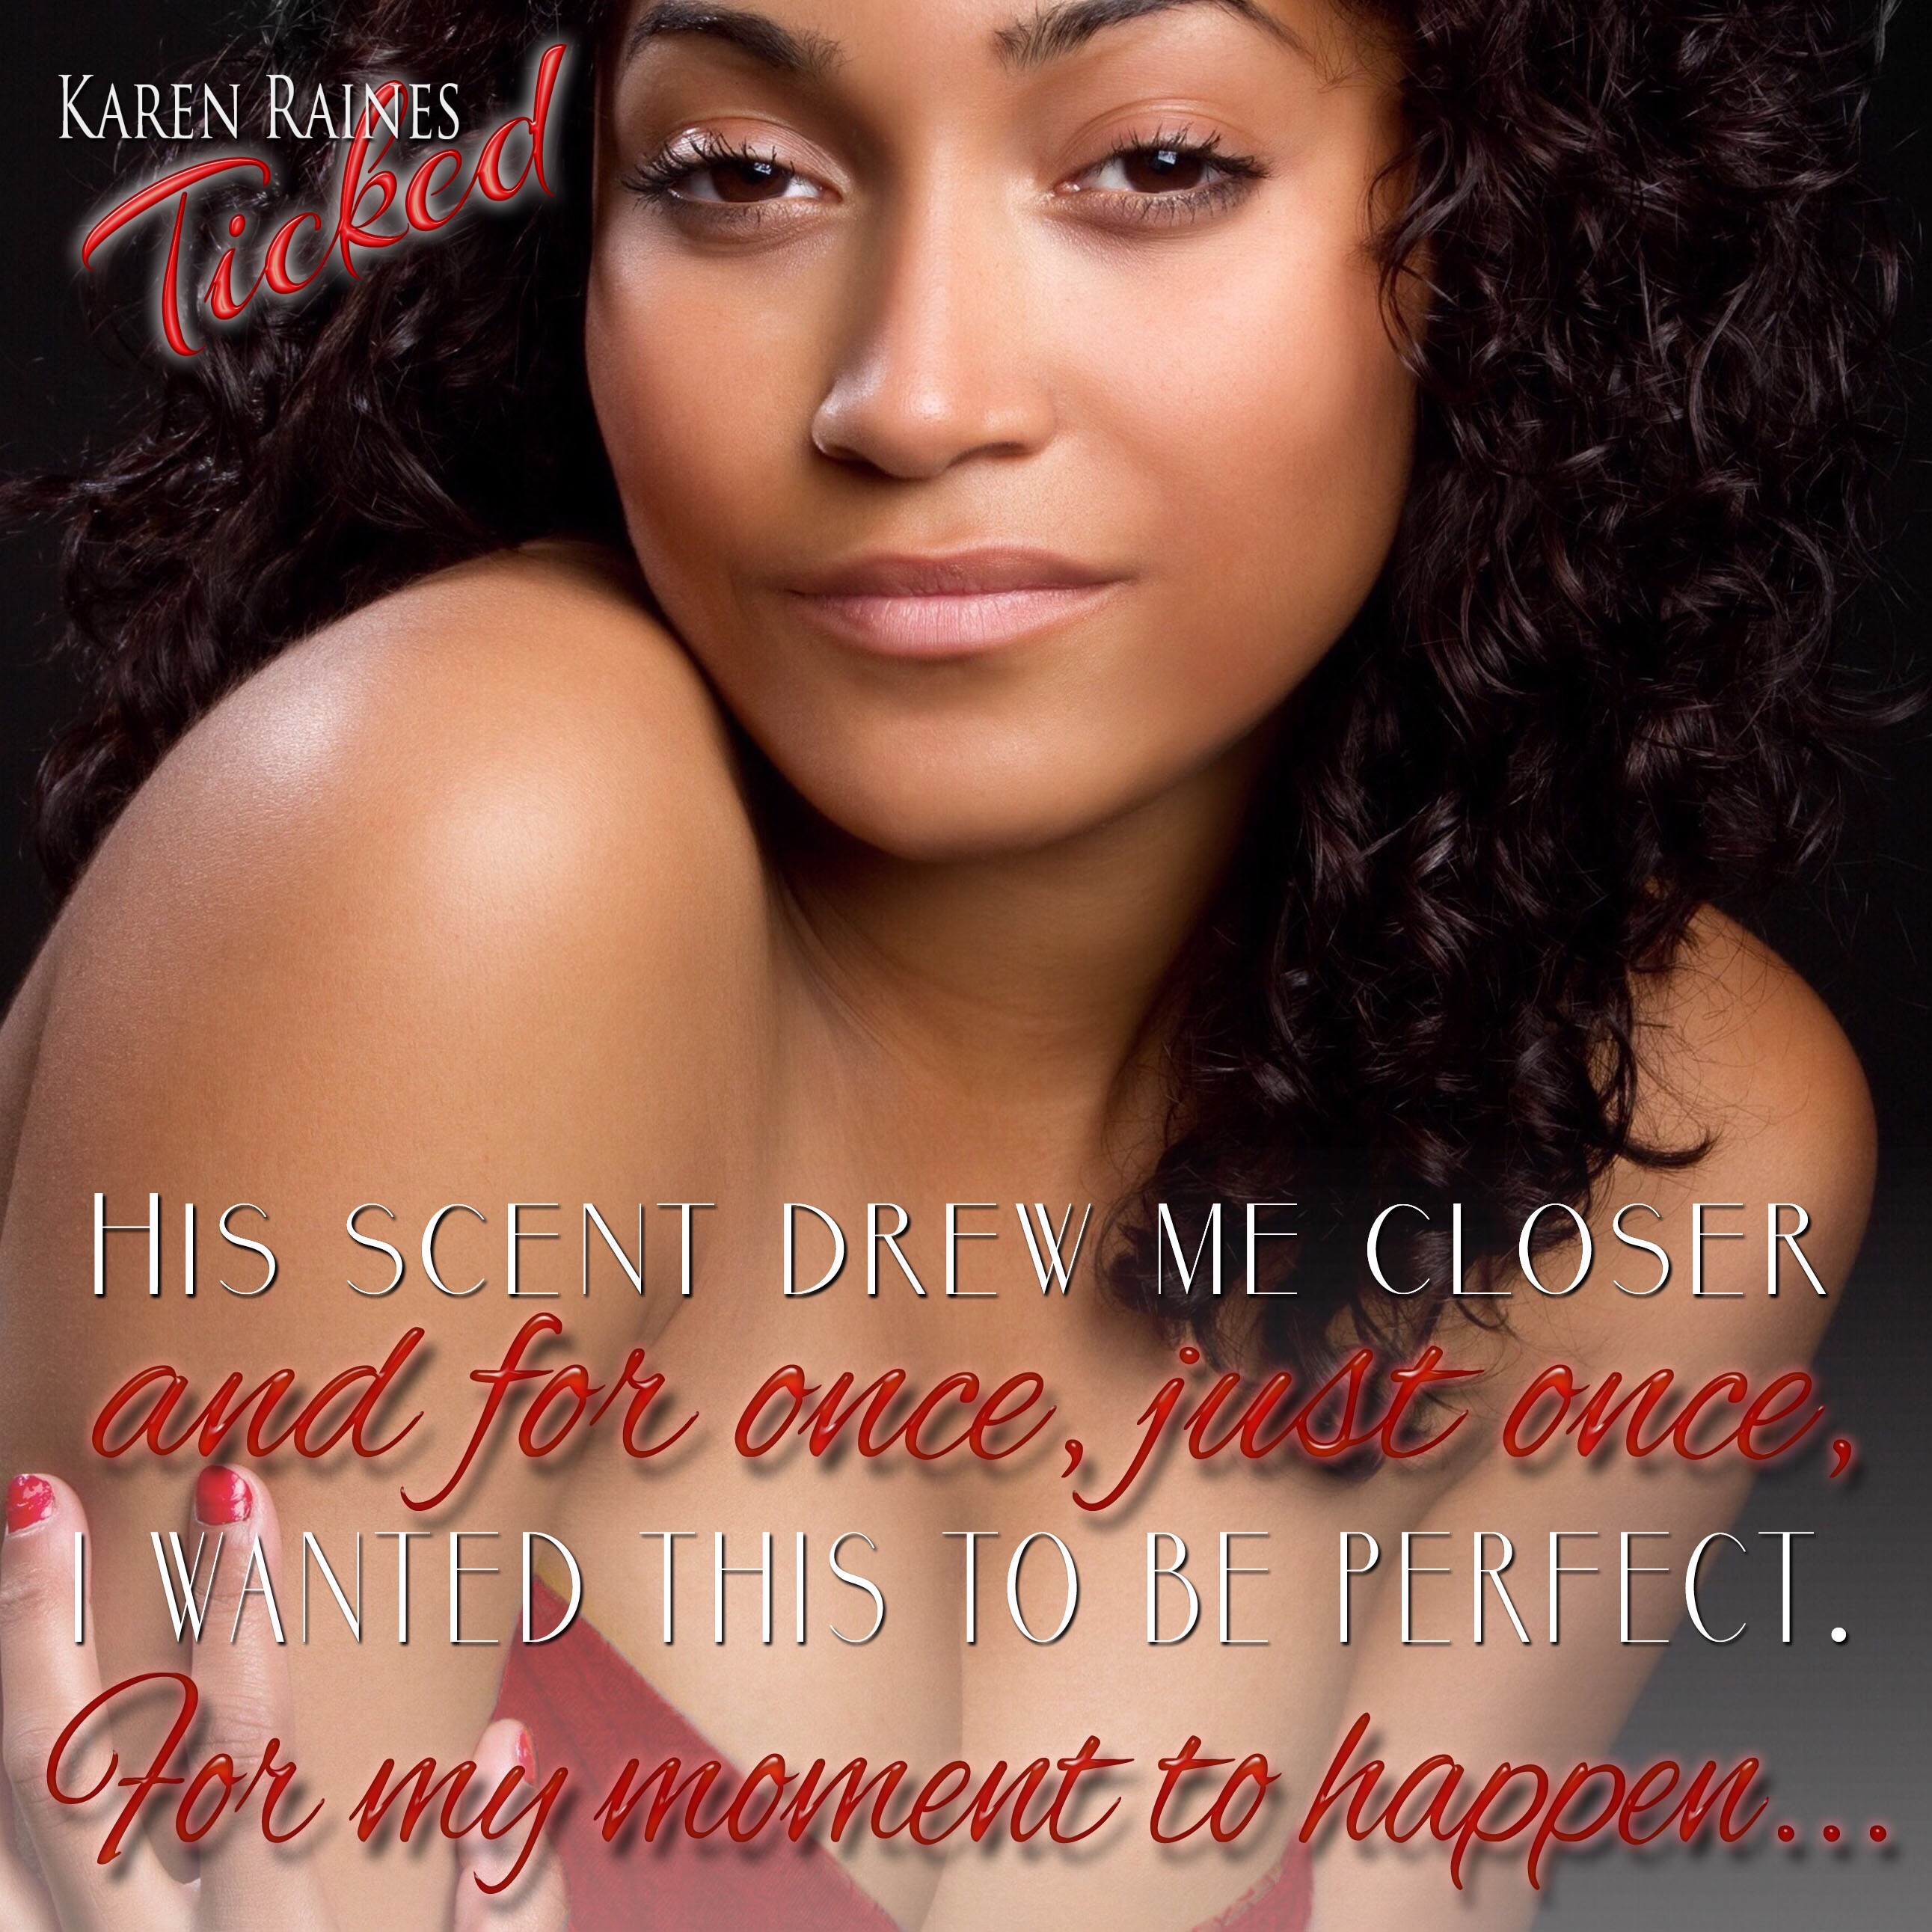 Ticked (Karen Raines) teaser#2